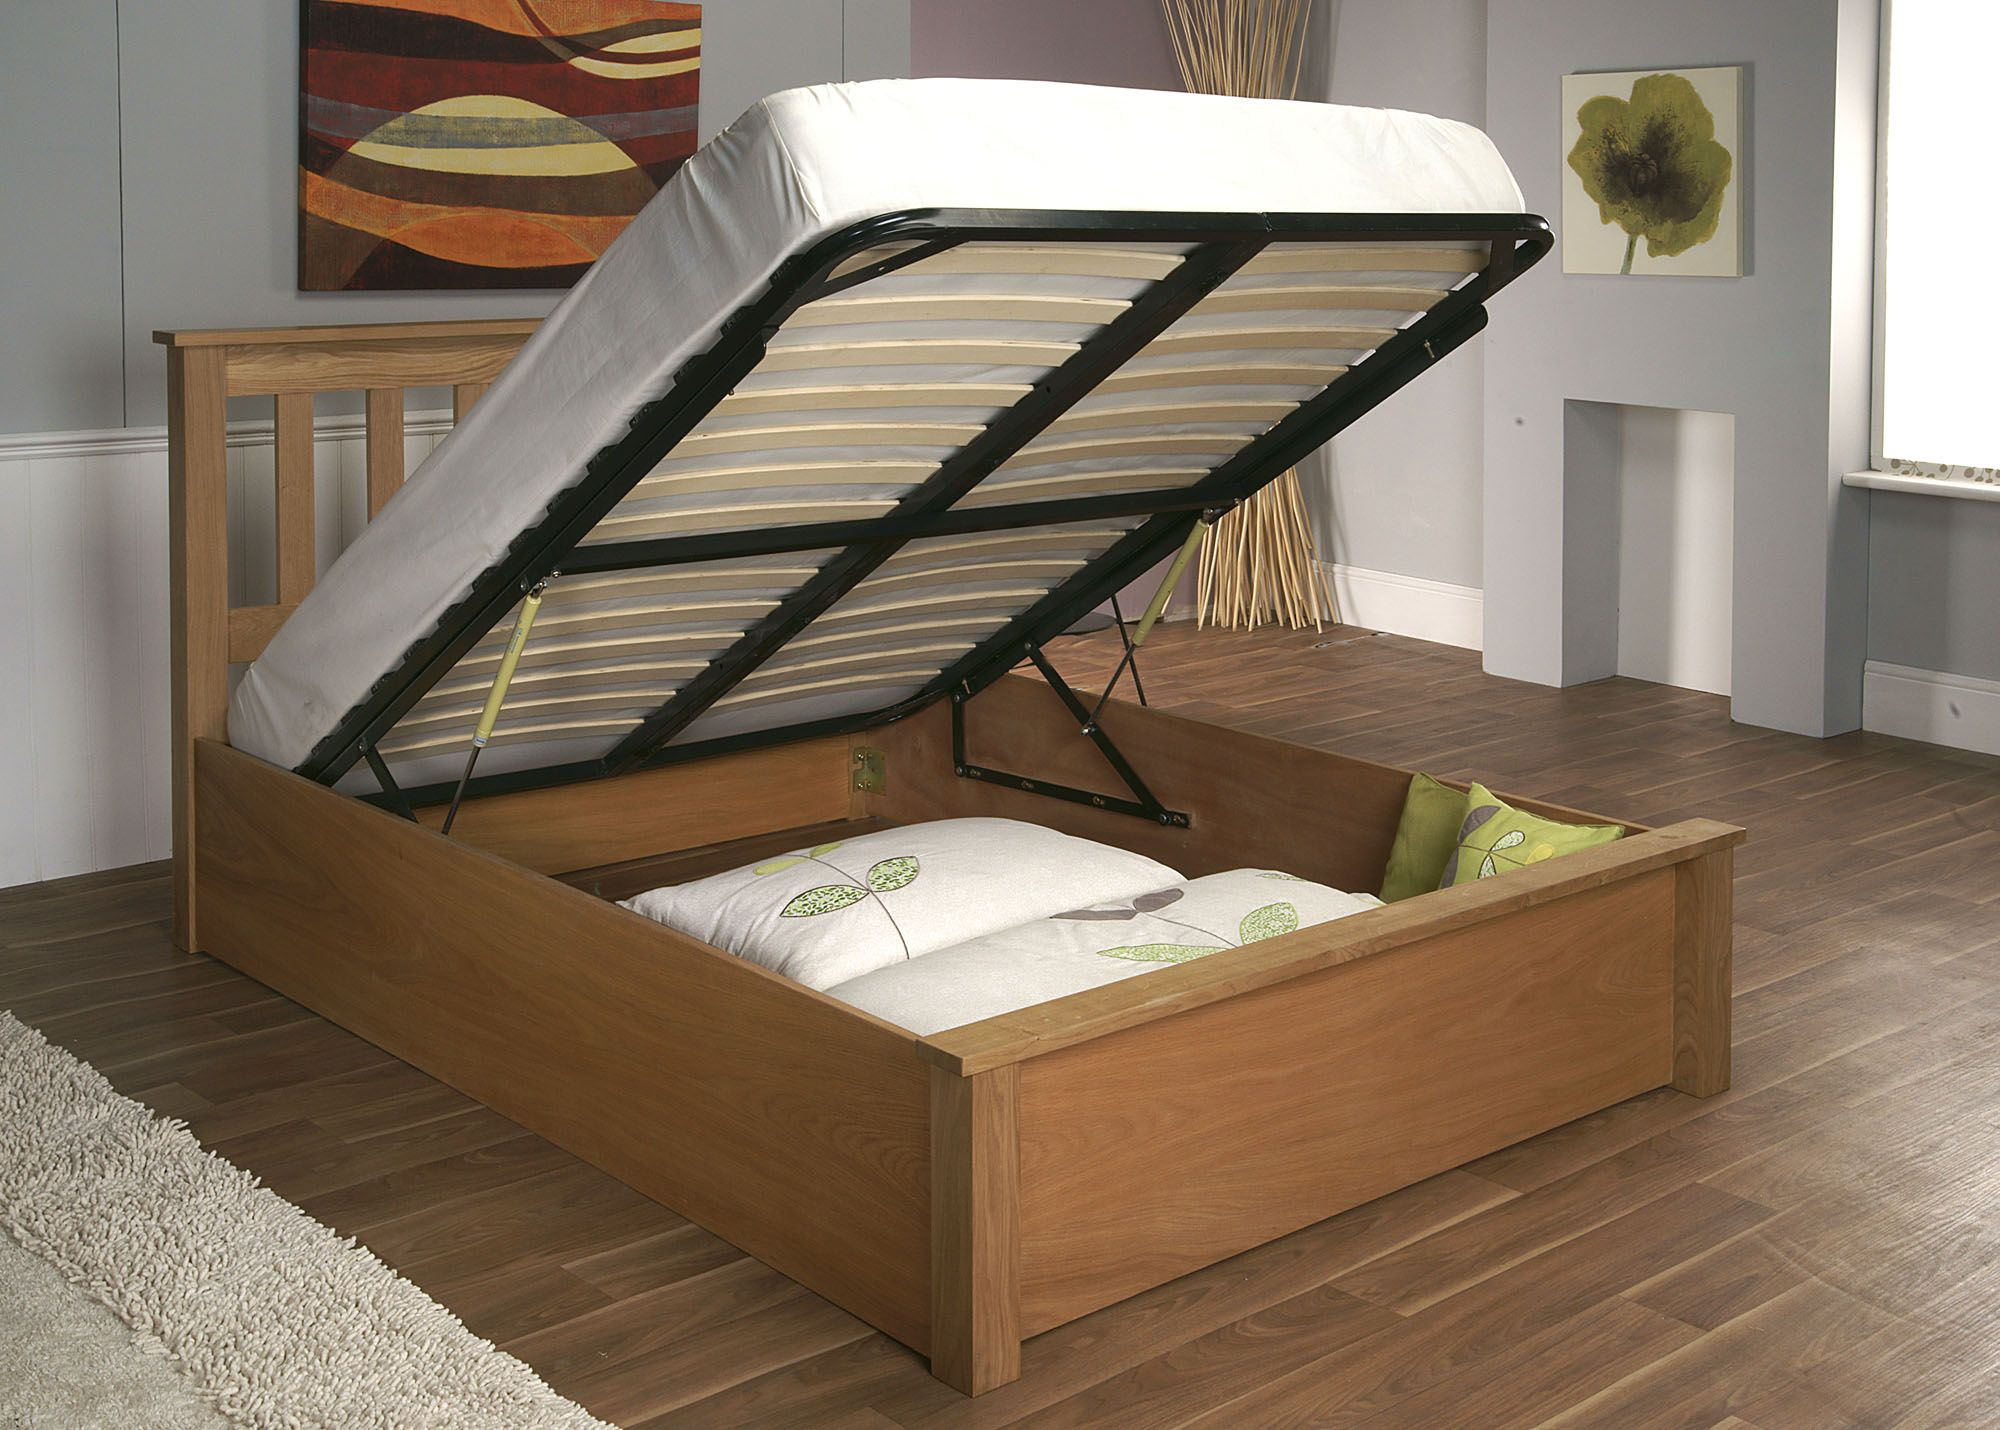 Wooden bed frame ideas - Twin Wood Bed Frame With Multipurpose Storage Under The Mattress Design Idea